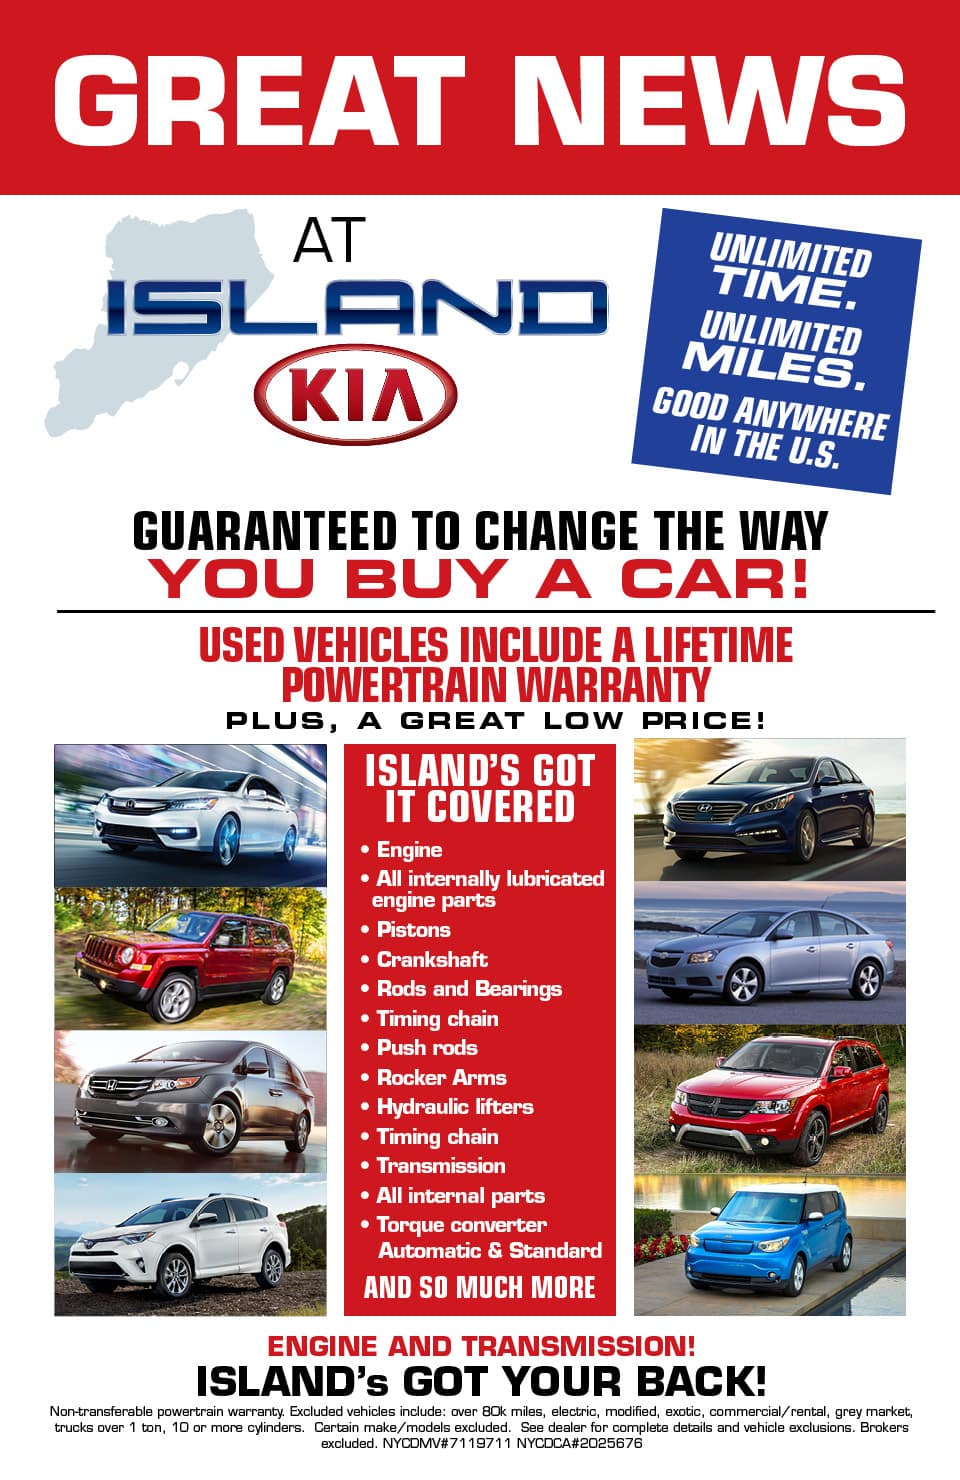 Staten Island Used Car Warranty Kia Dealership Near Woodbridge Nyc